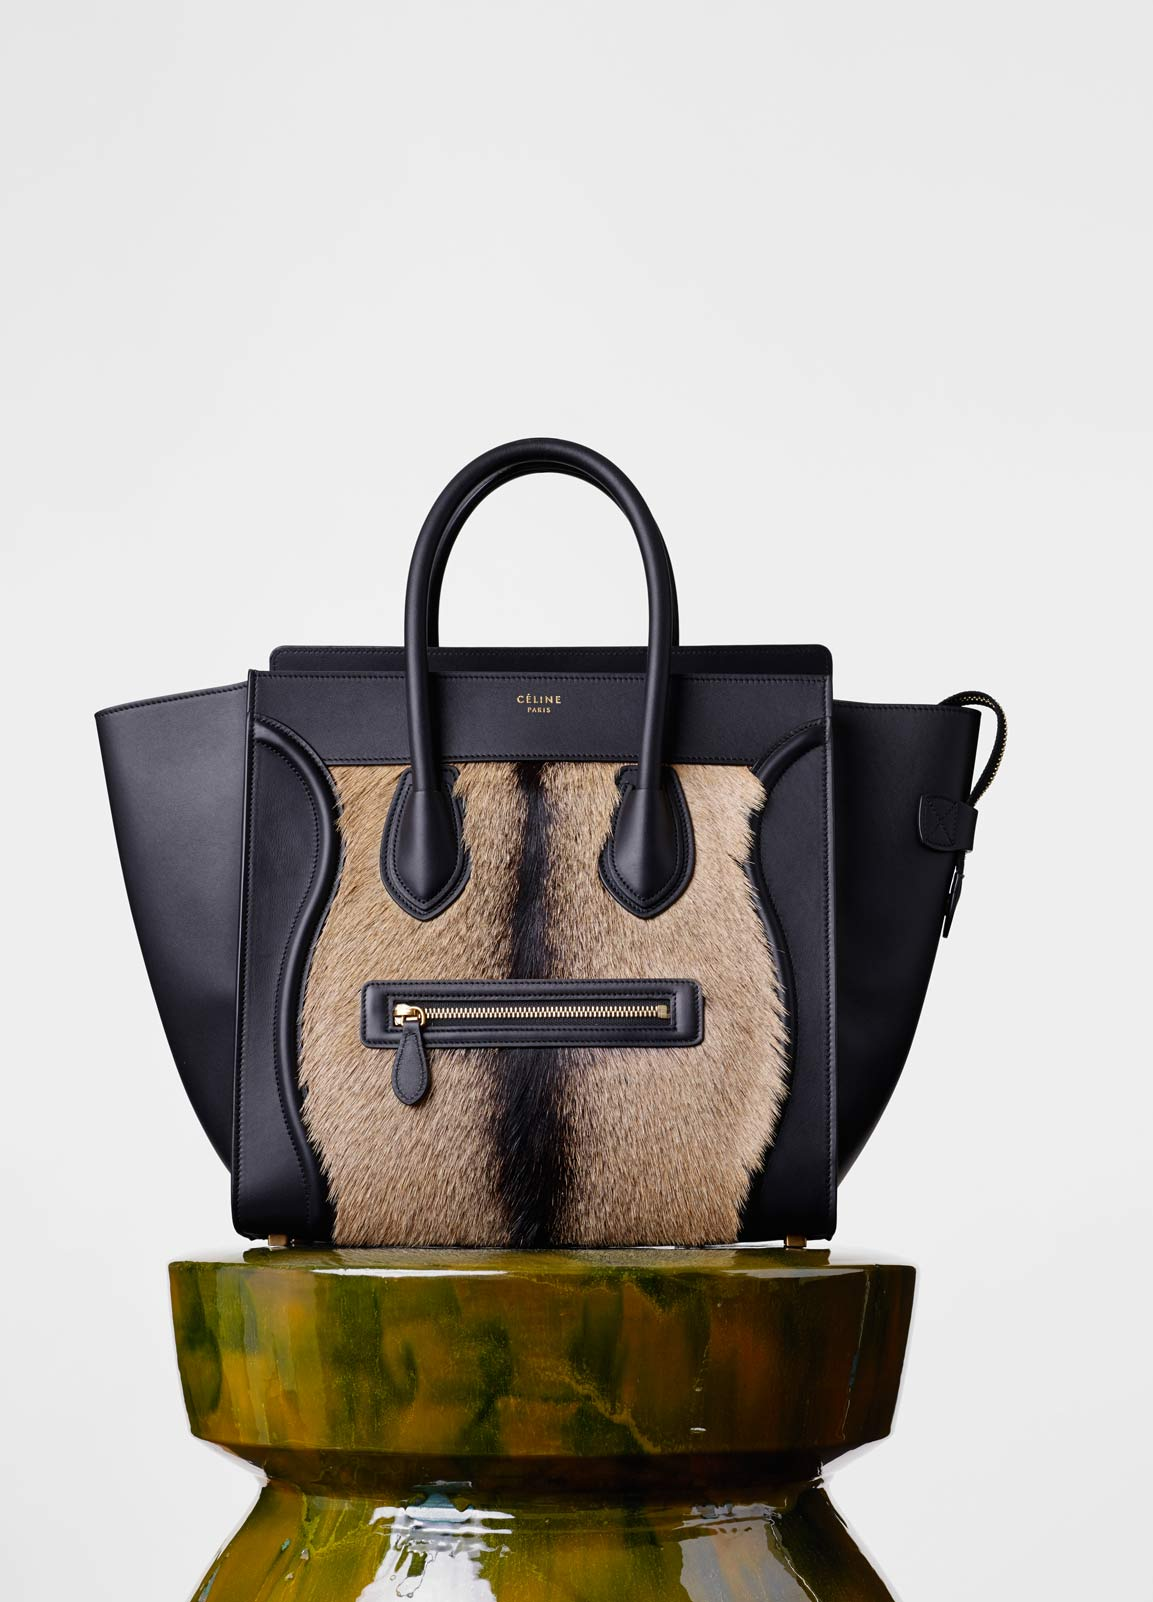 celine luggage mini - Celine Winter 2015 Bag Collection Featuring Subtropical Shades and ...